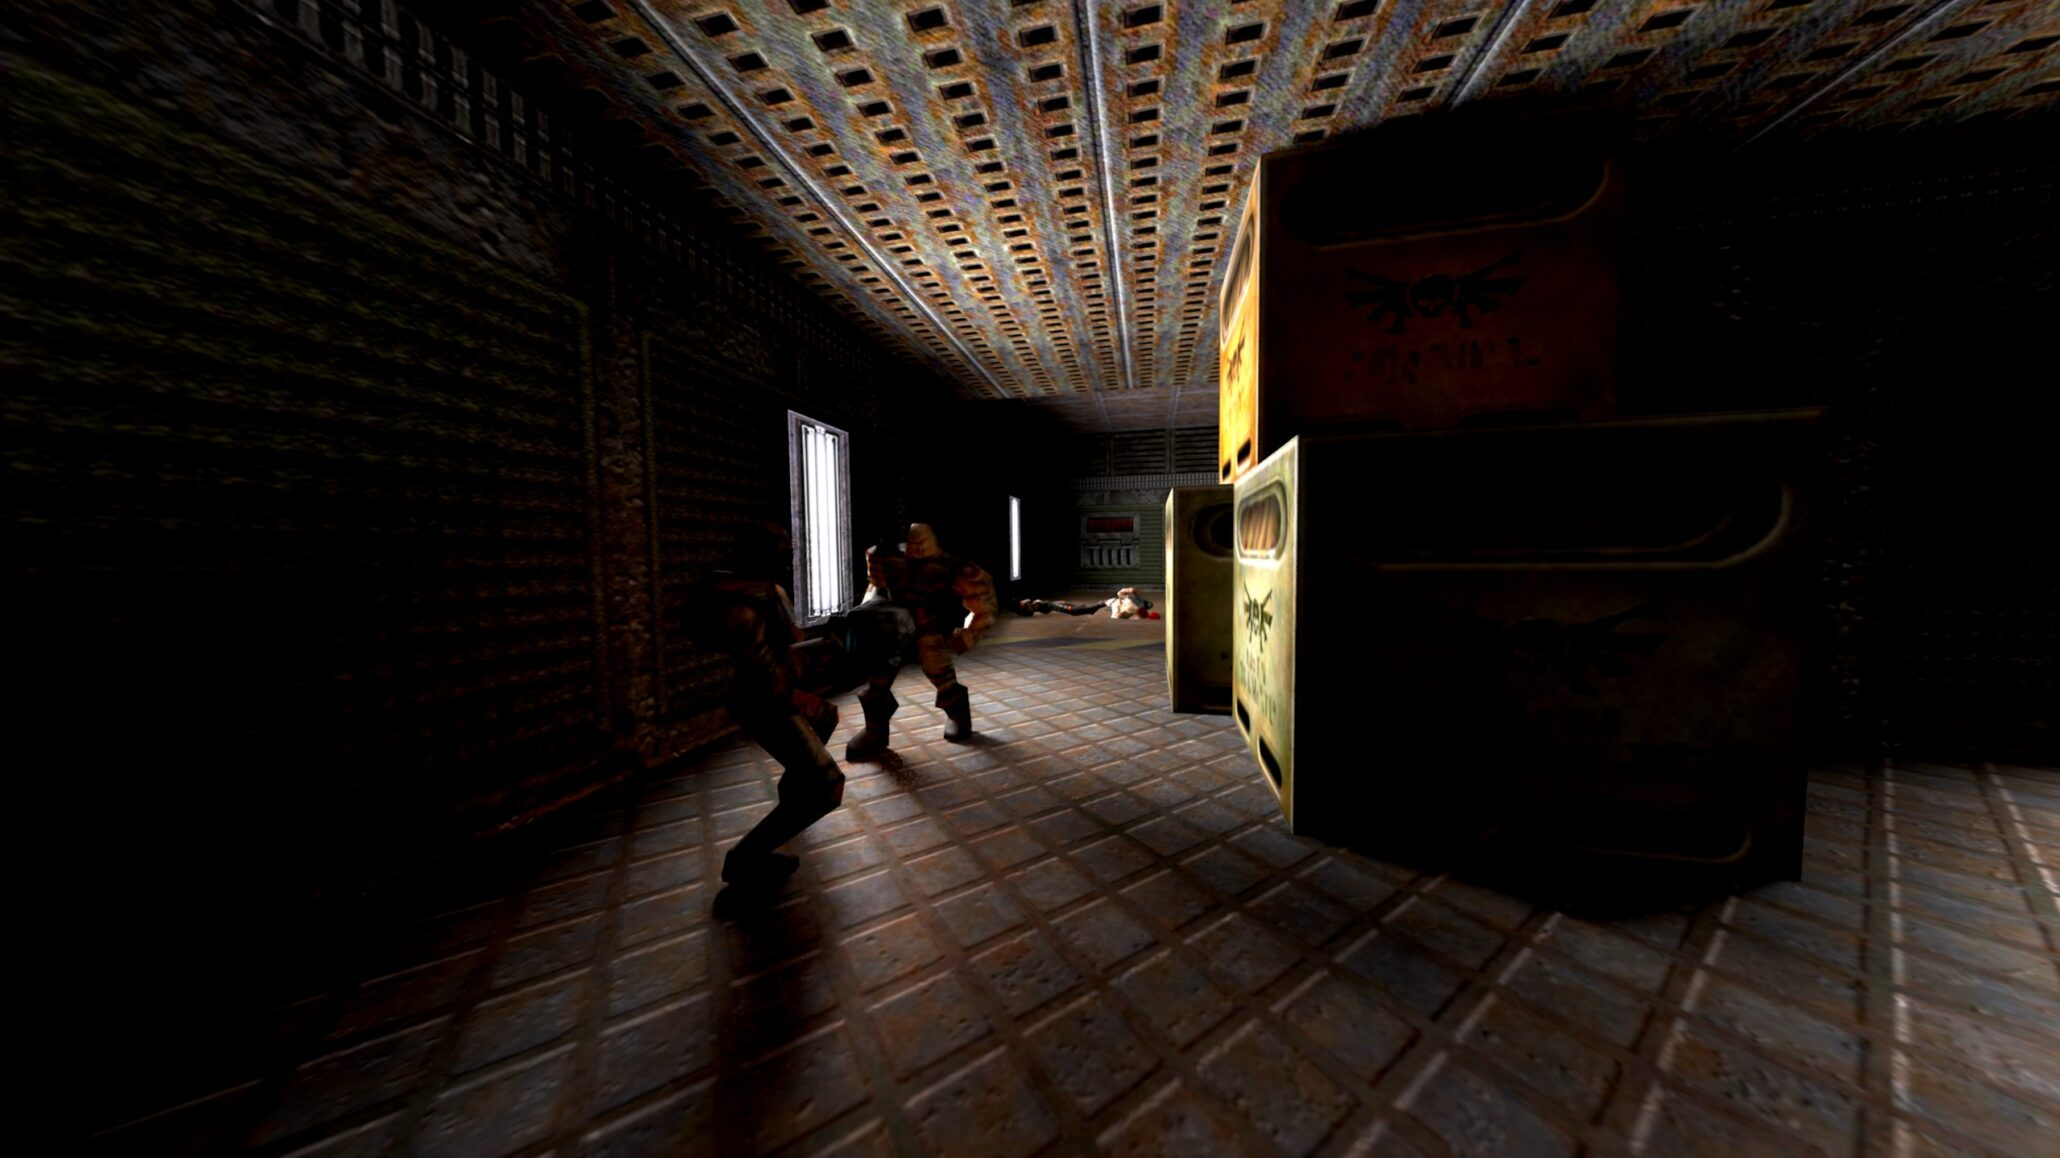 Q2VKPT Is the First Entirely Raytraced Game with Fully